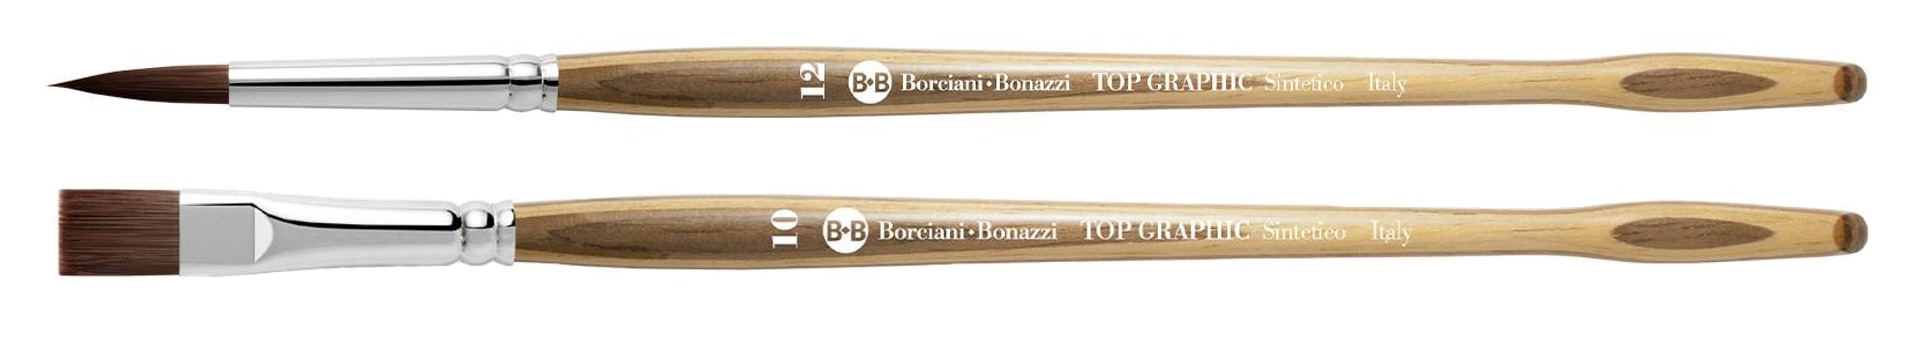 Borciani e Bonazzi Top Graphic